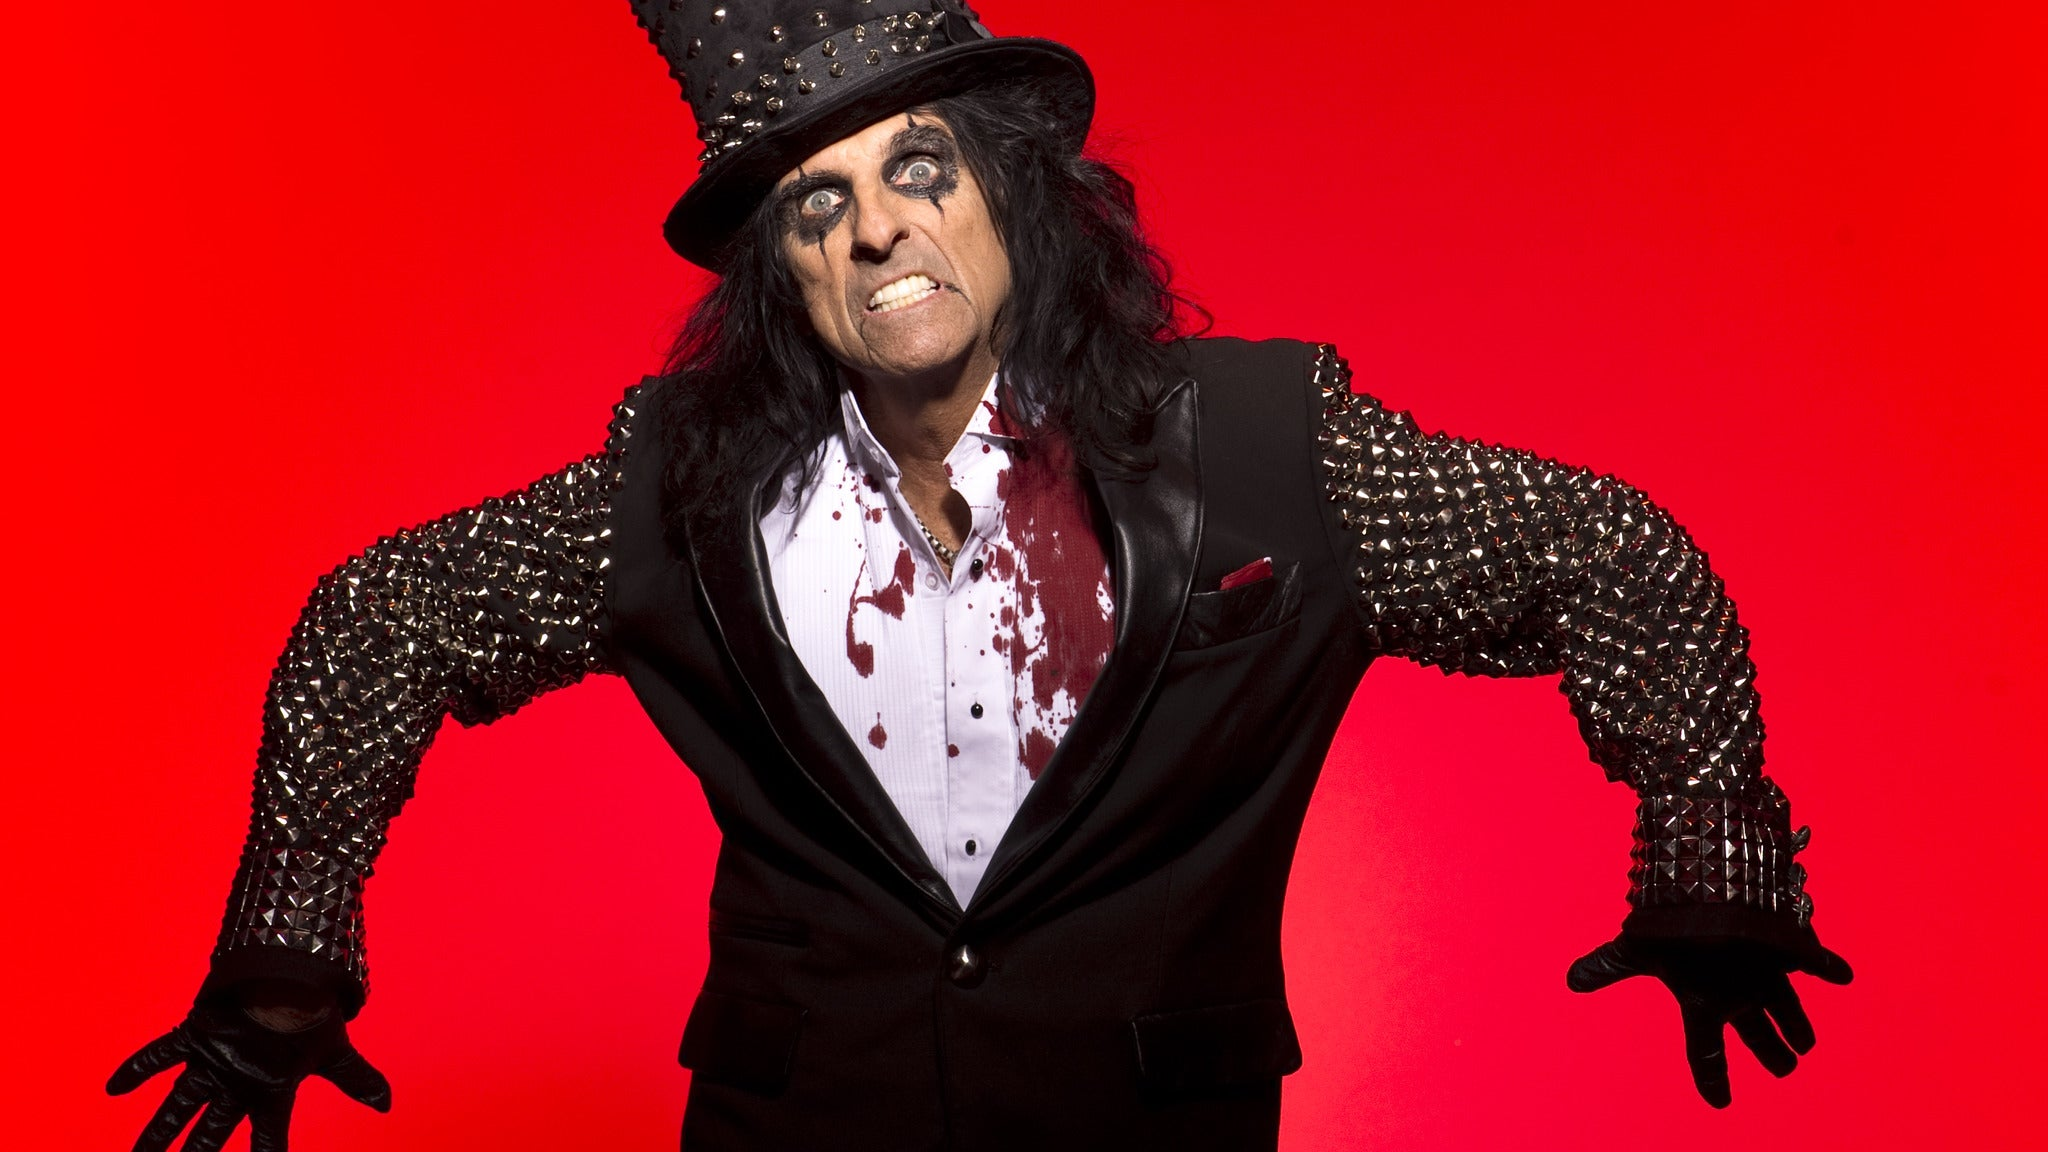 A Paranormal Evening With Alice Cooper at Mohegan Sun Arena - Uncasville, CT 06382